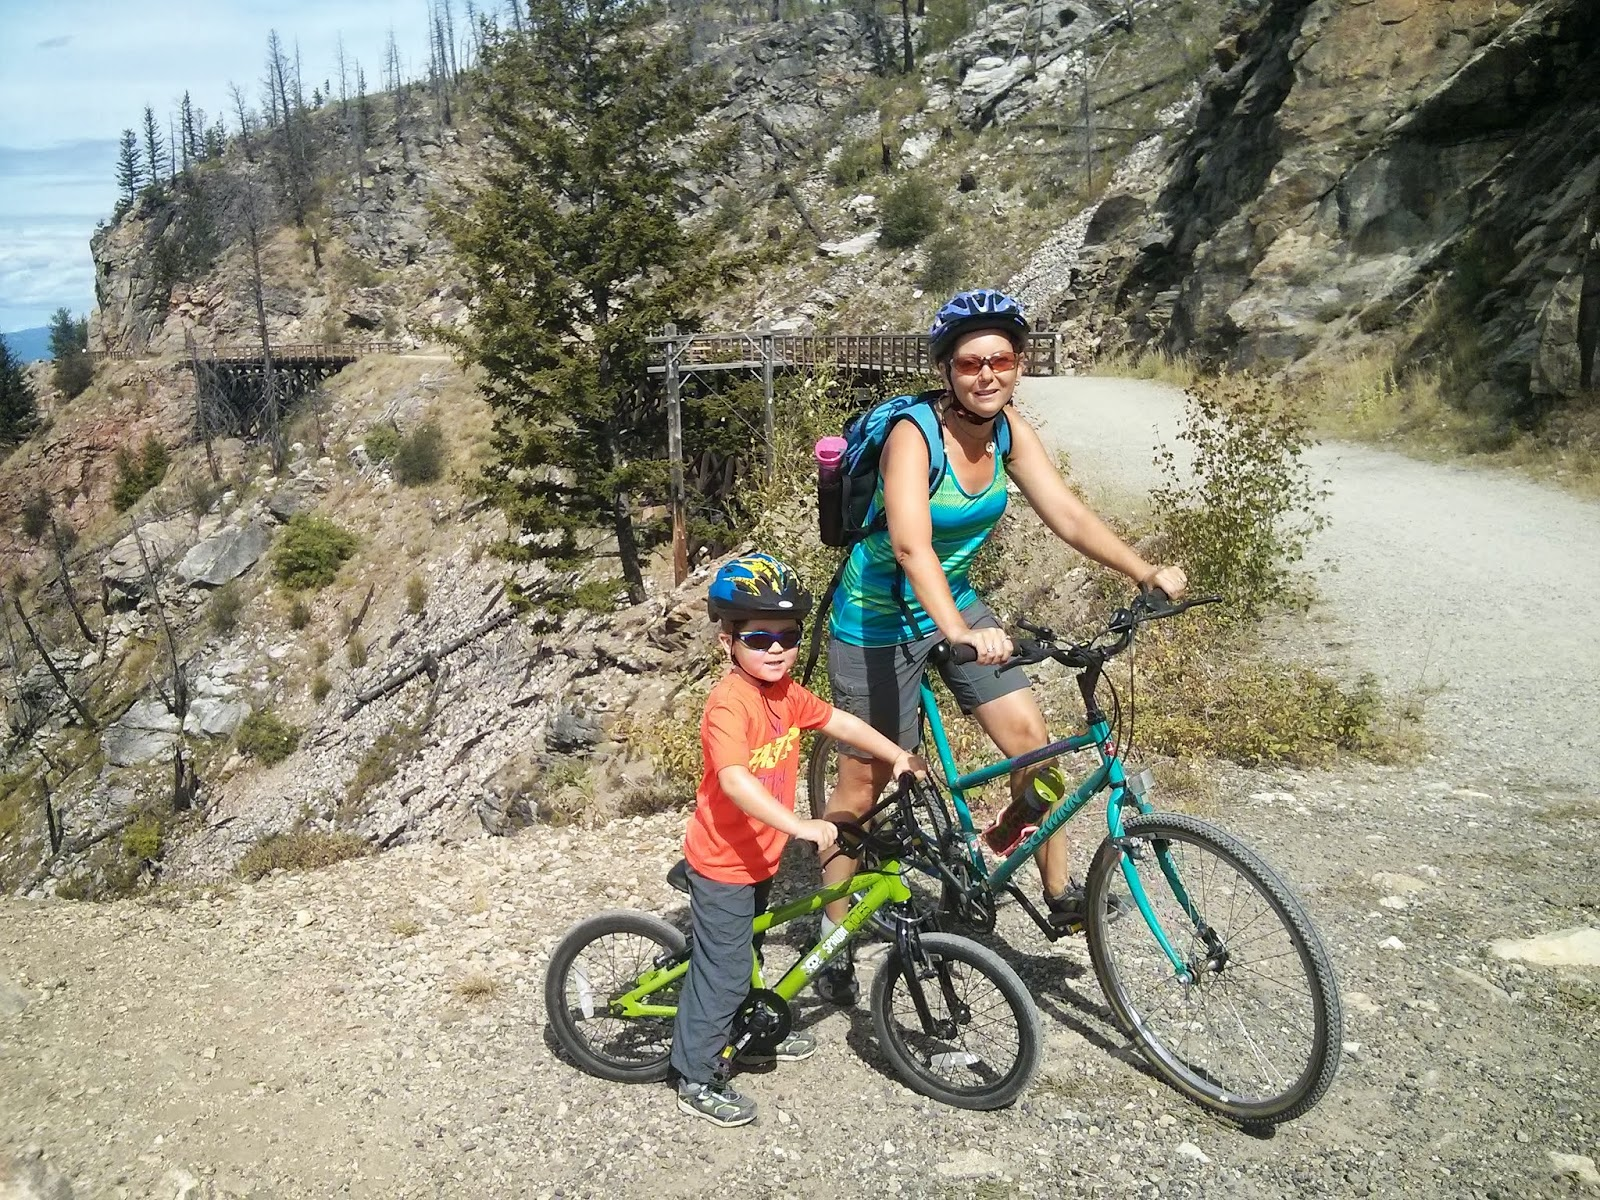 Family Adventures in the Canadian Rockies Biking the Kettle